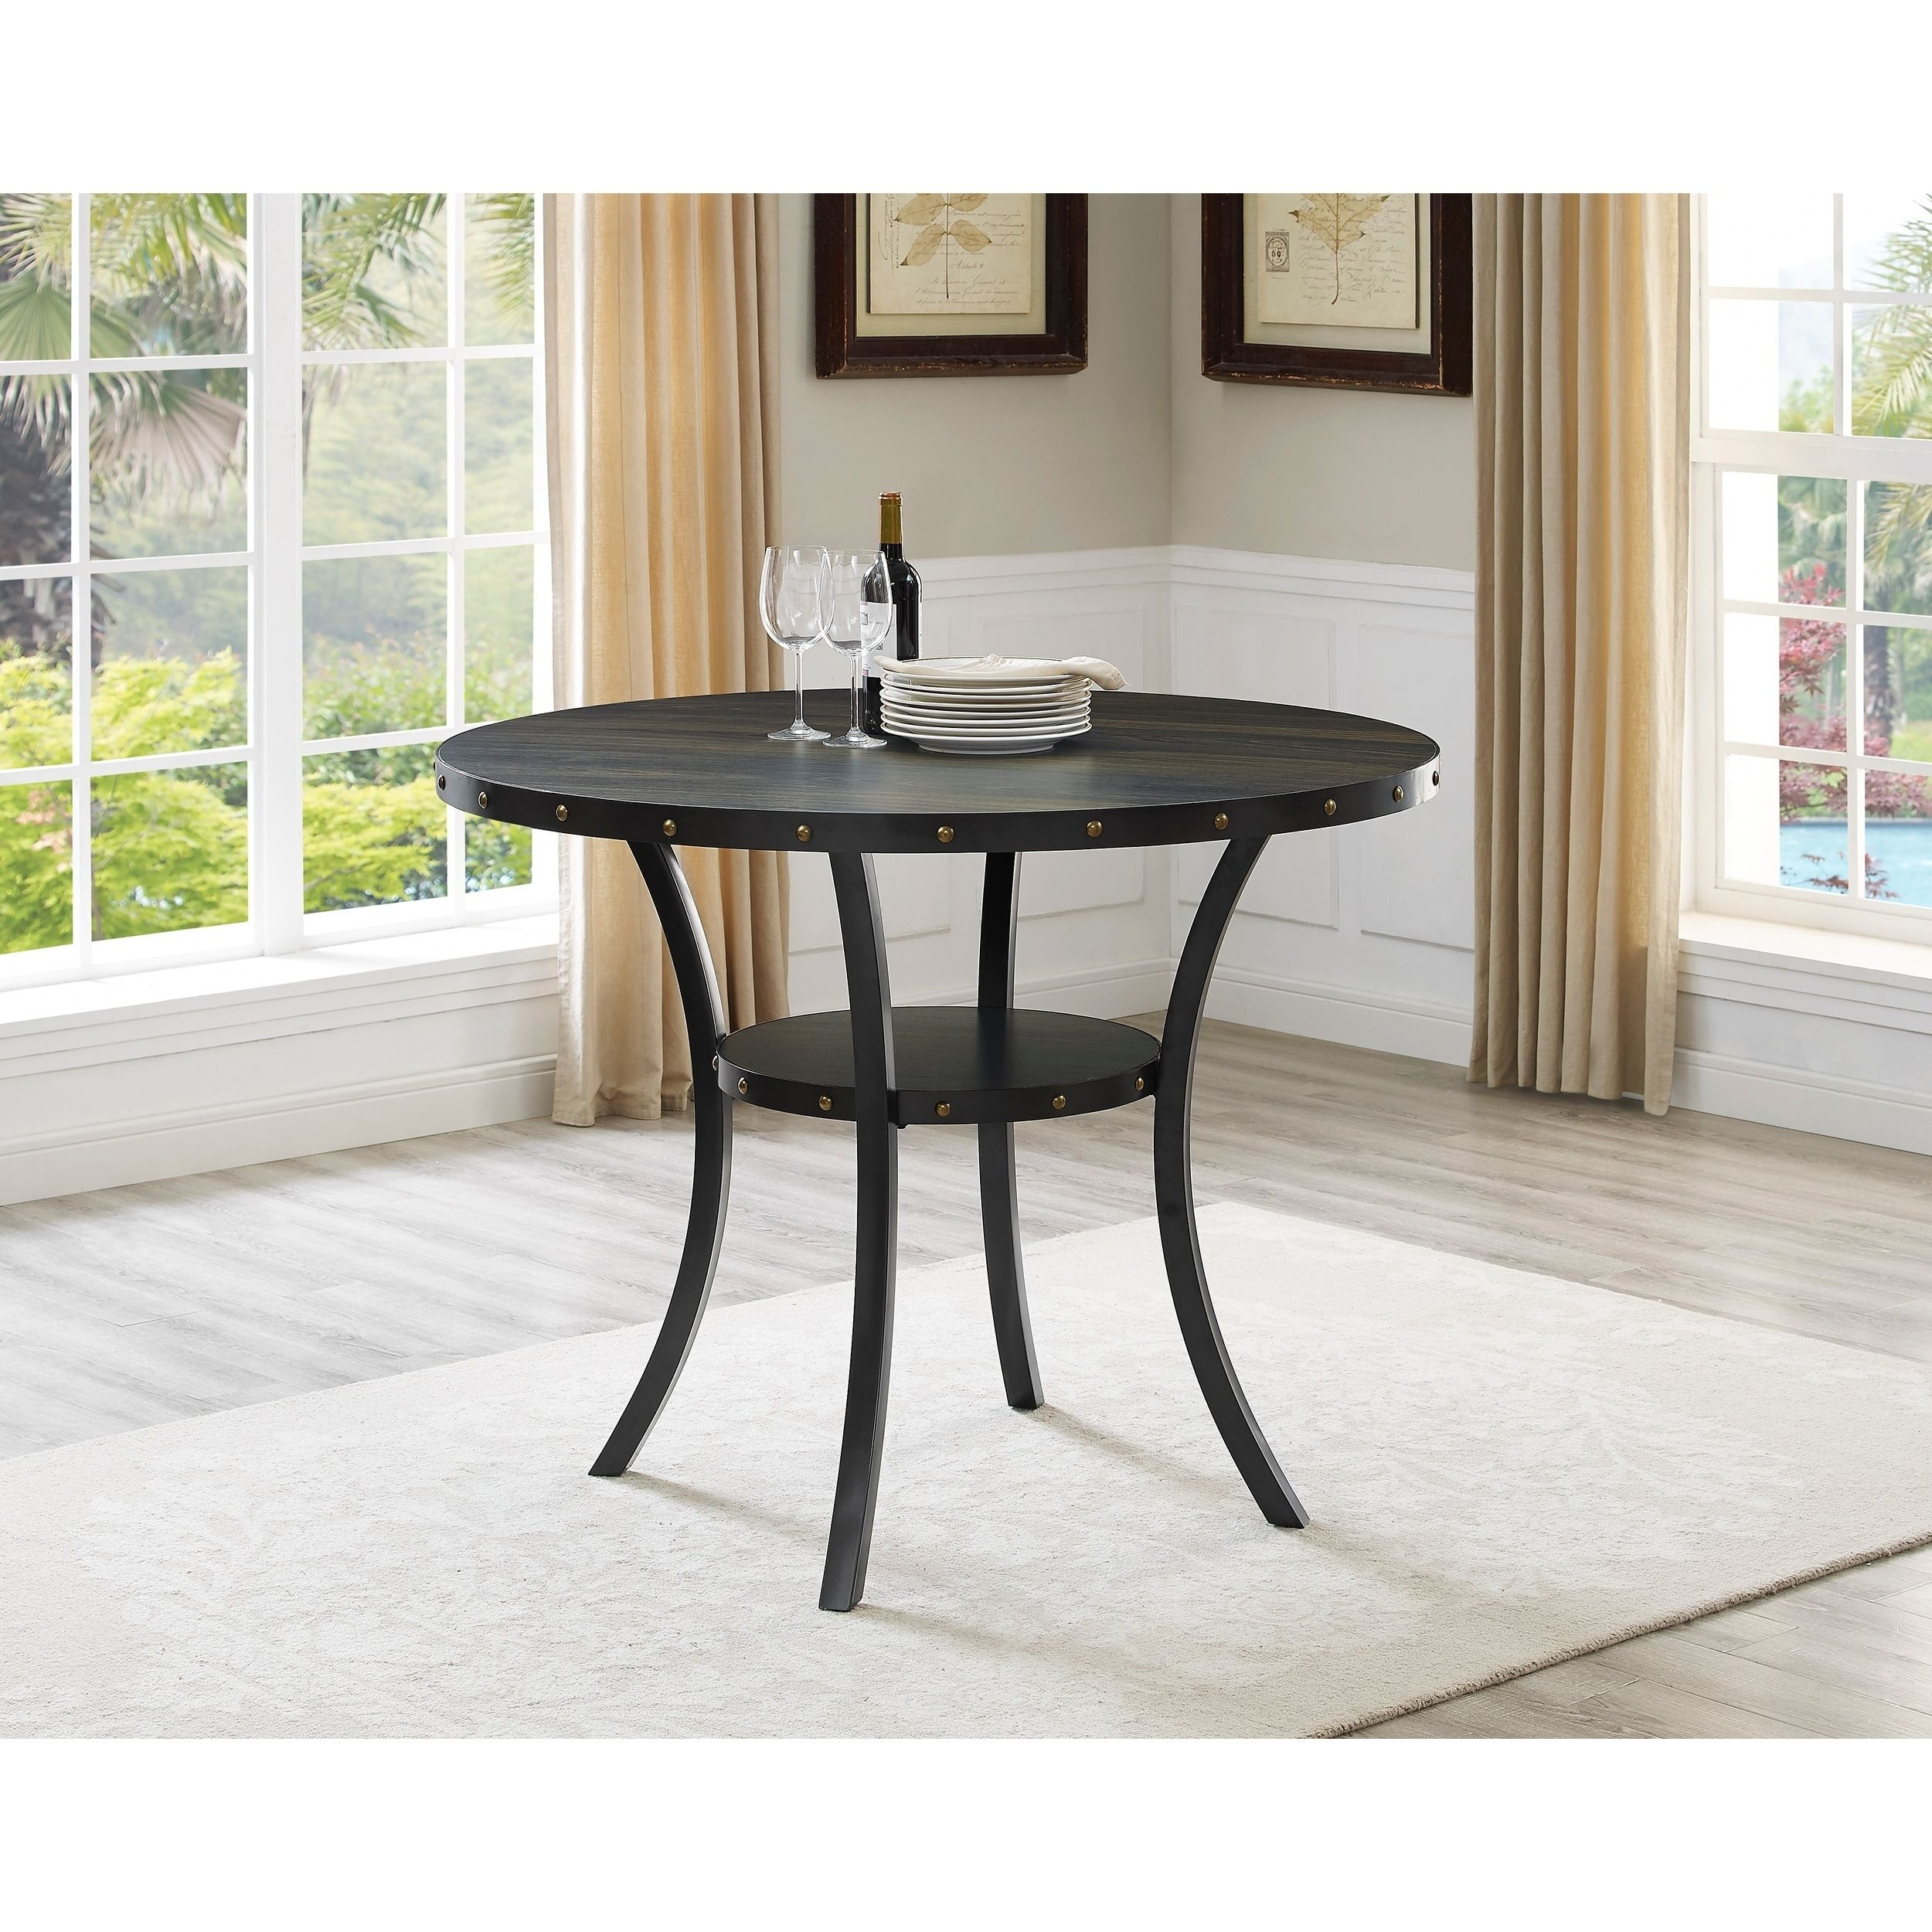 Biony dining collection espresso wood counter height nailhead dining